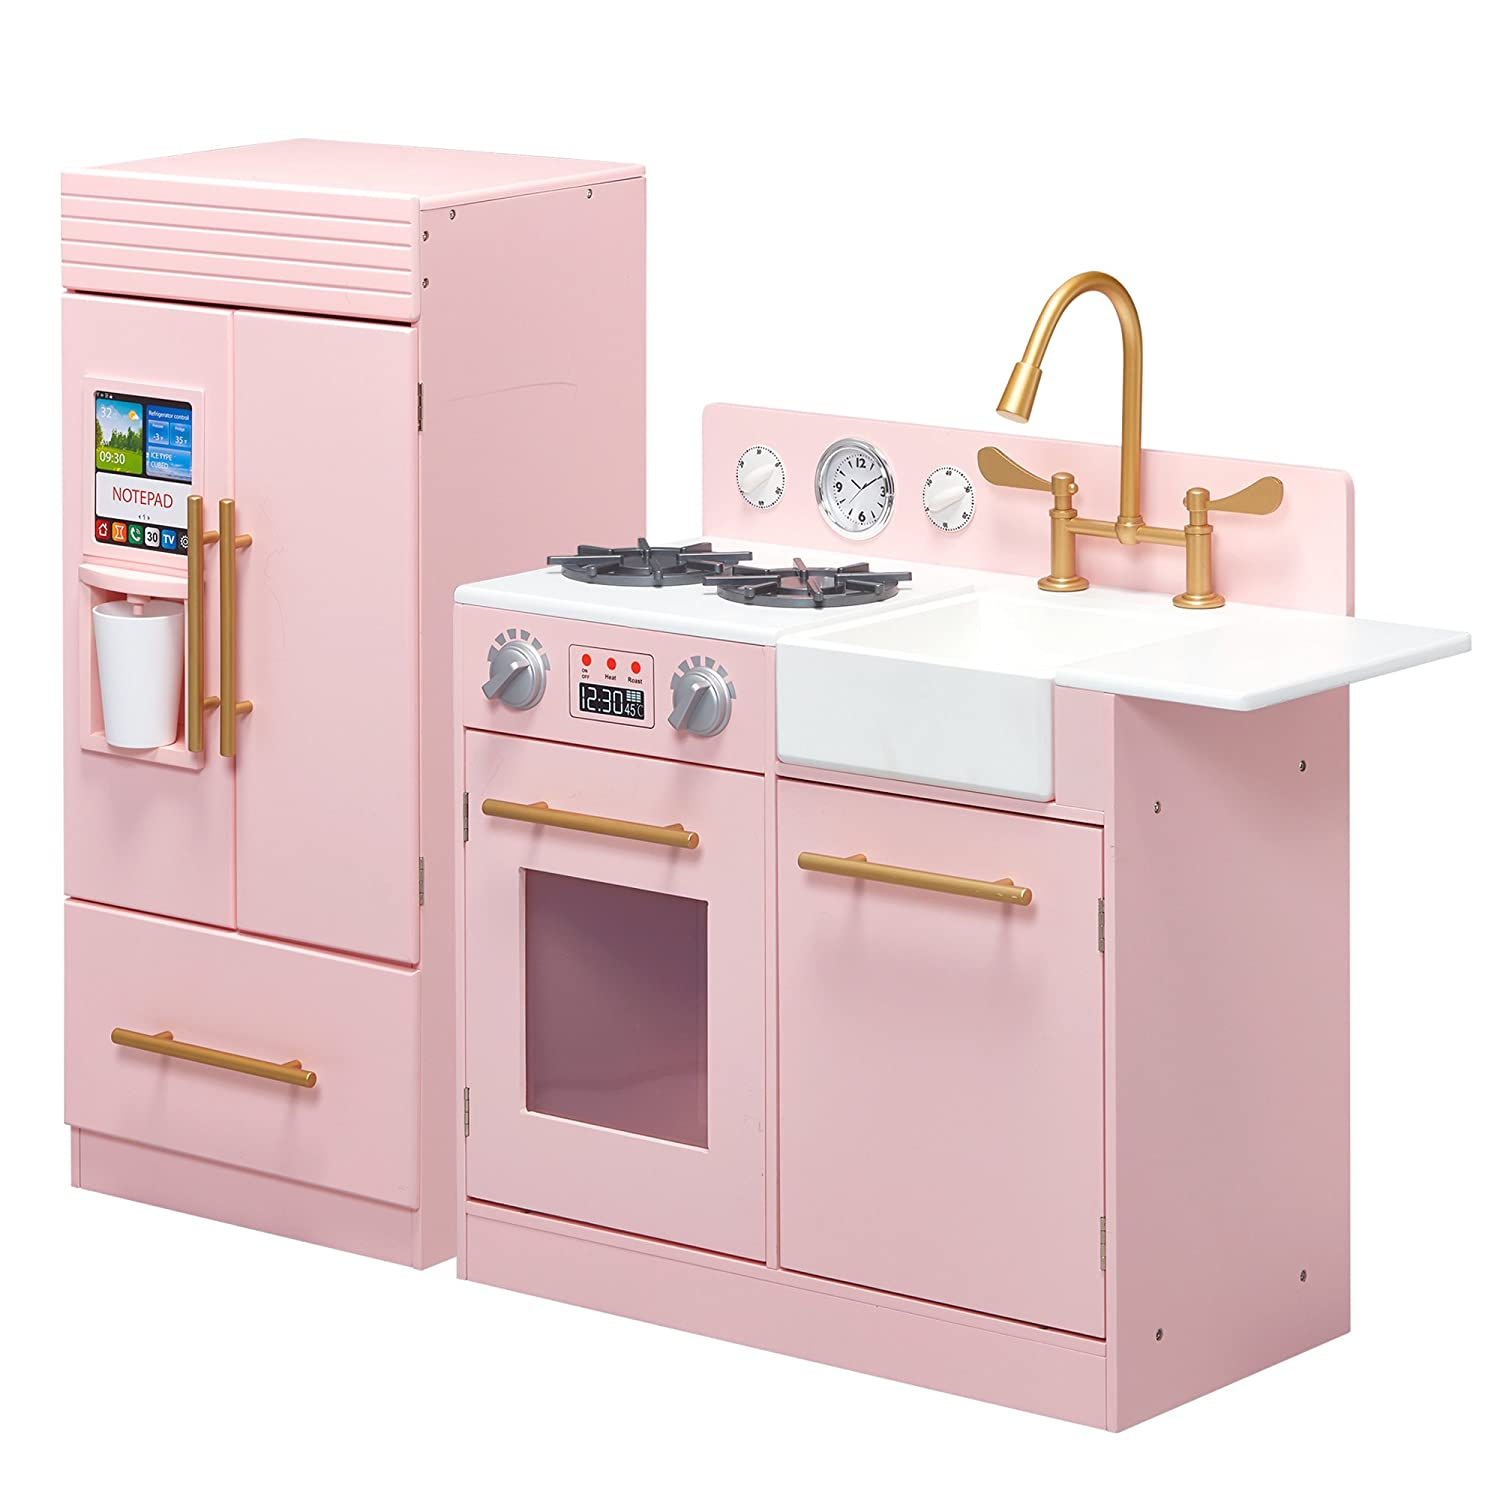 Teamson Kids TD-12302P Modern Play Kitchen with Ice Maker, Pink